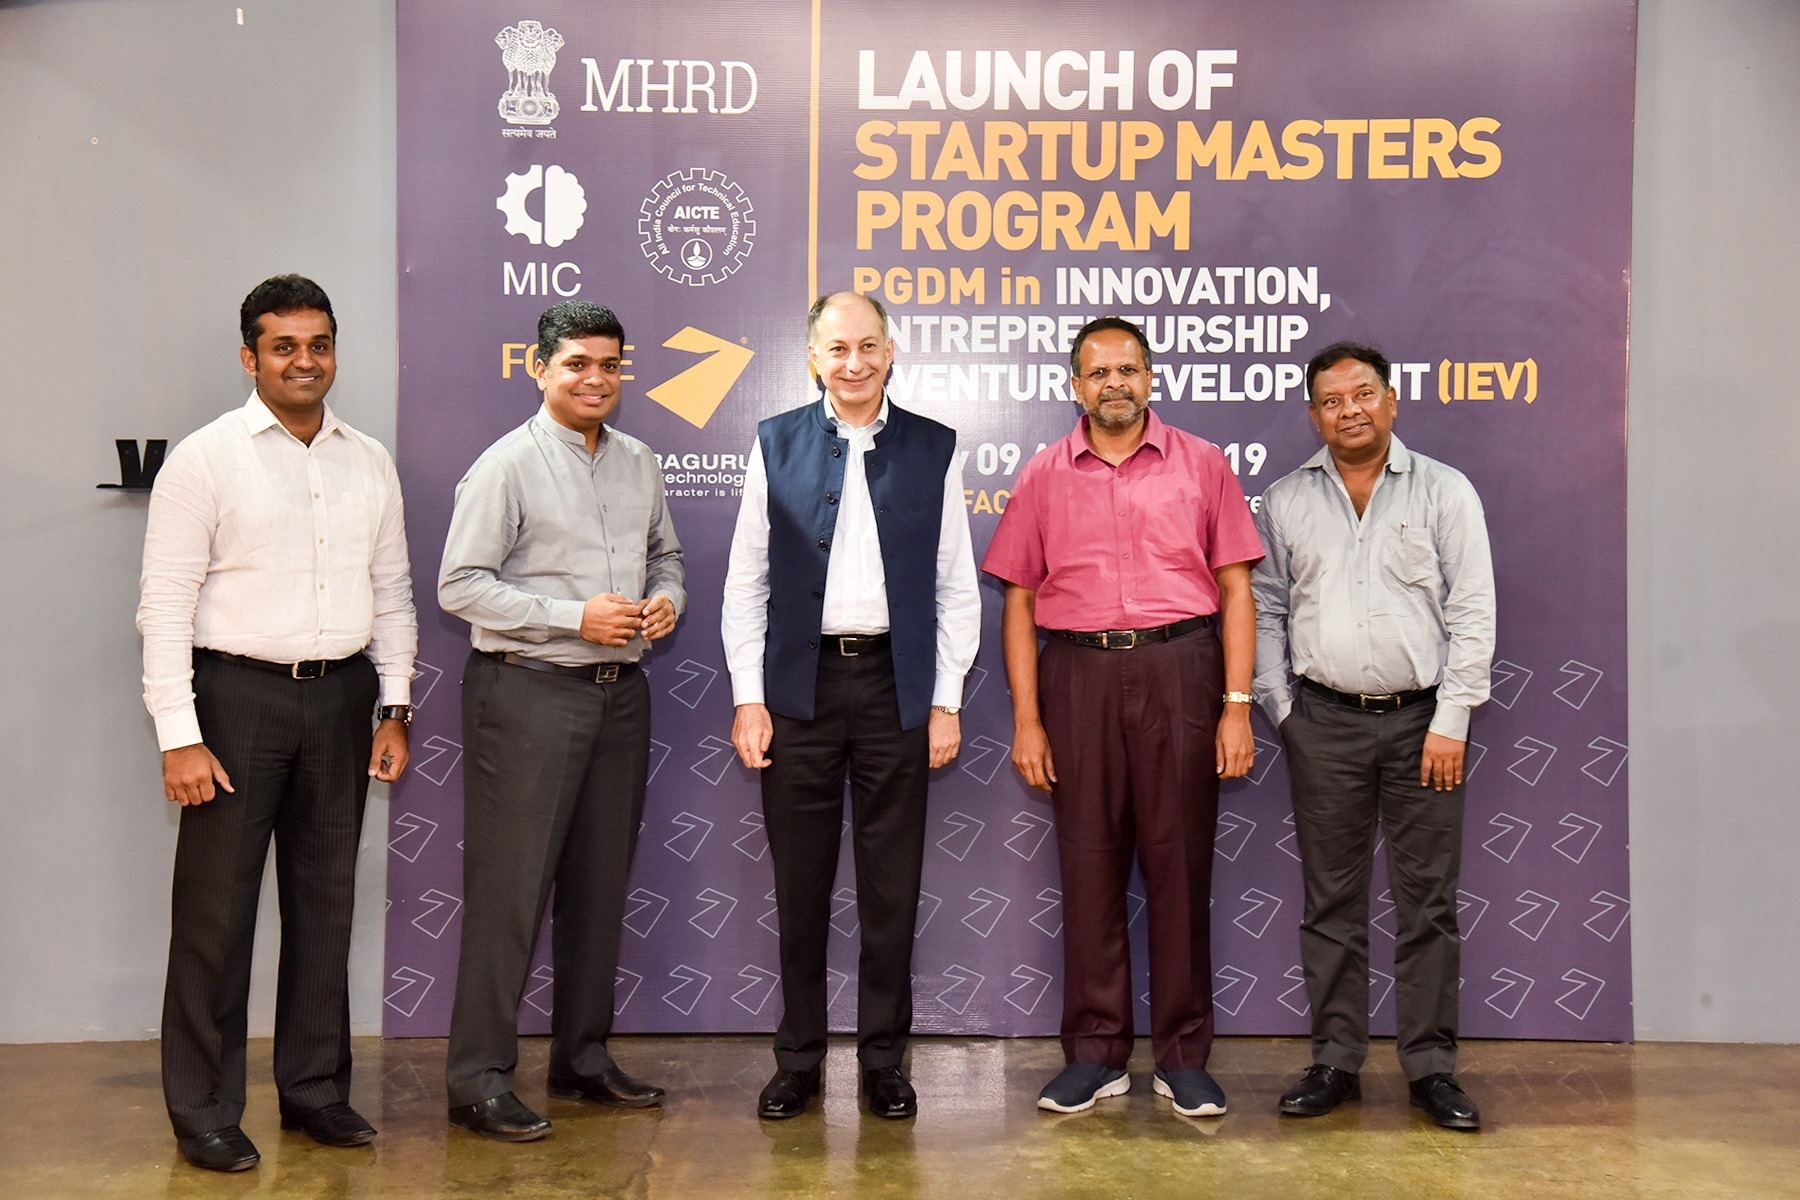 Launch of Startup Masters Program